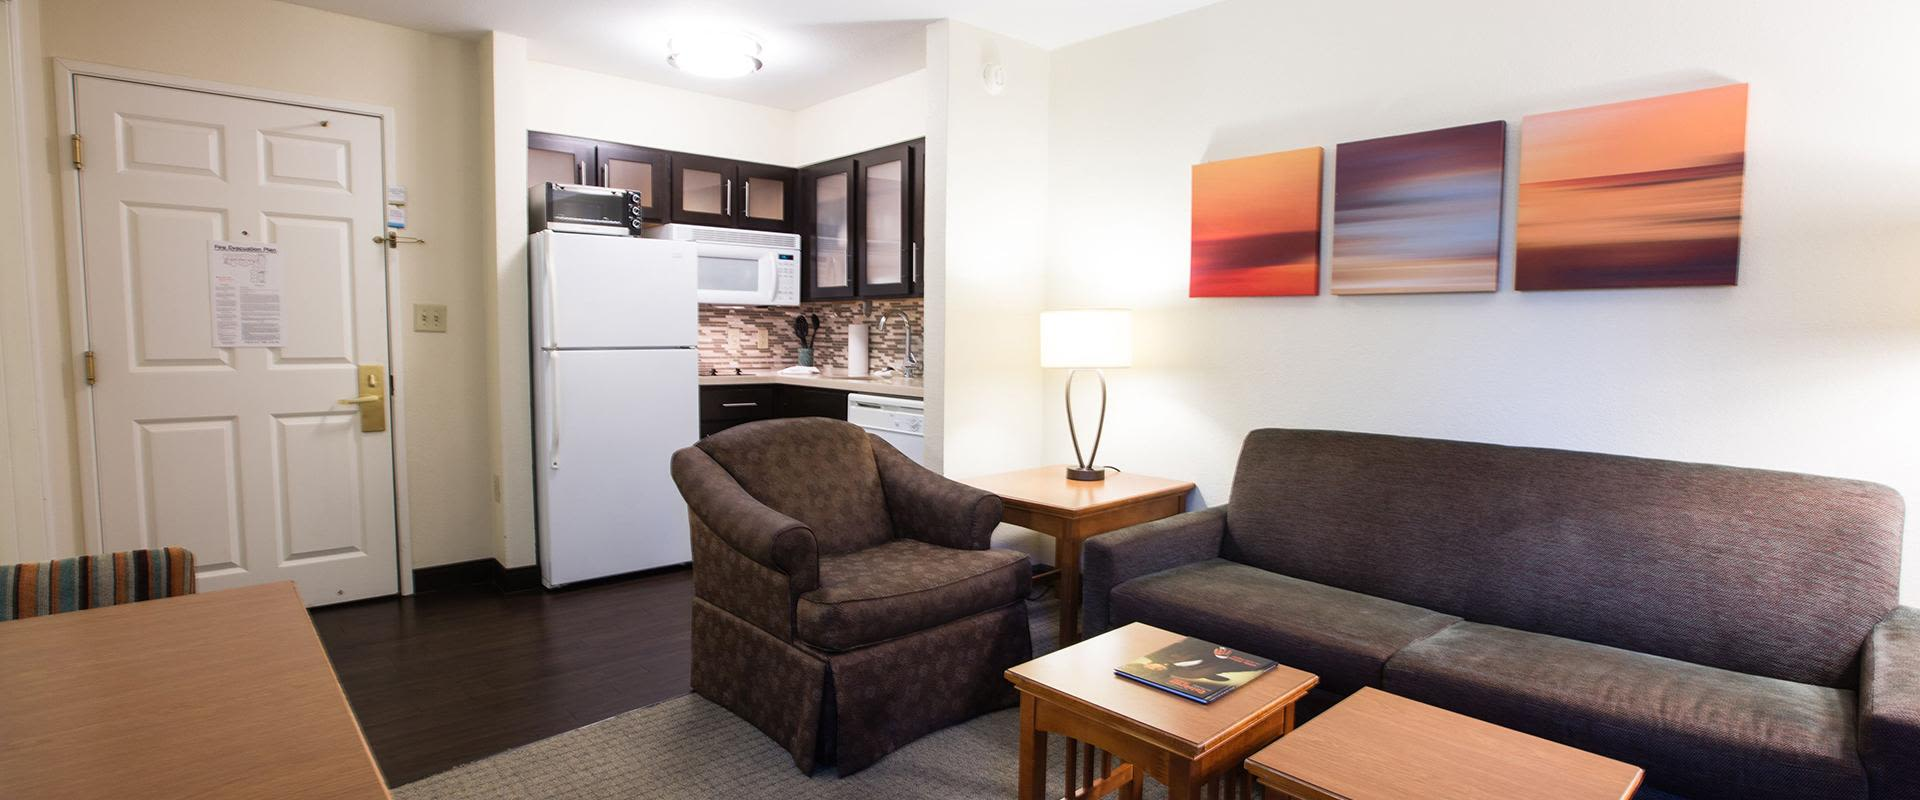 Two Bedroom Living Area and Kitchen